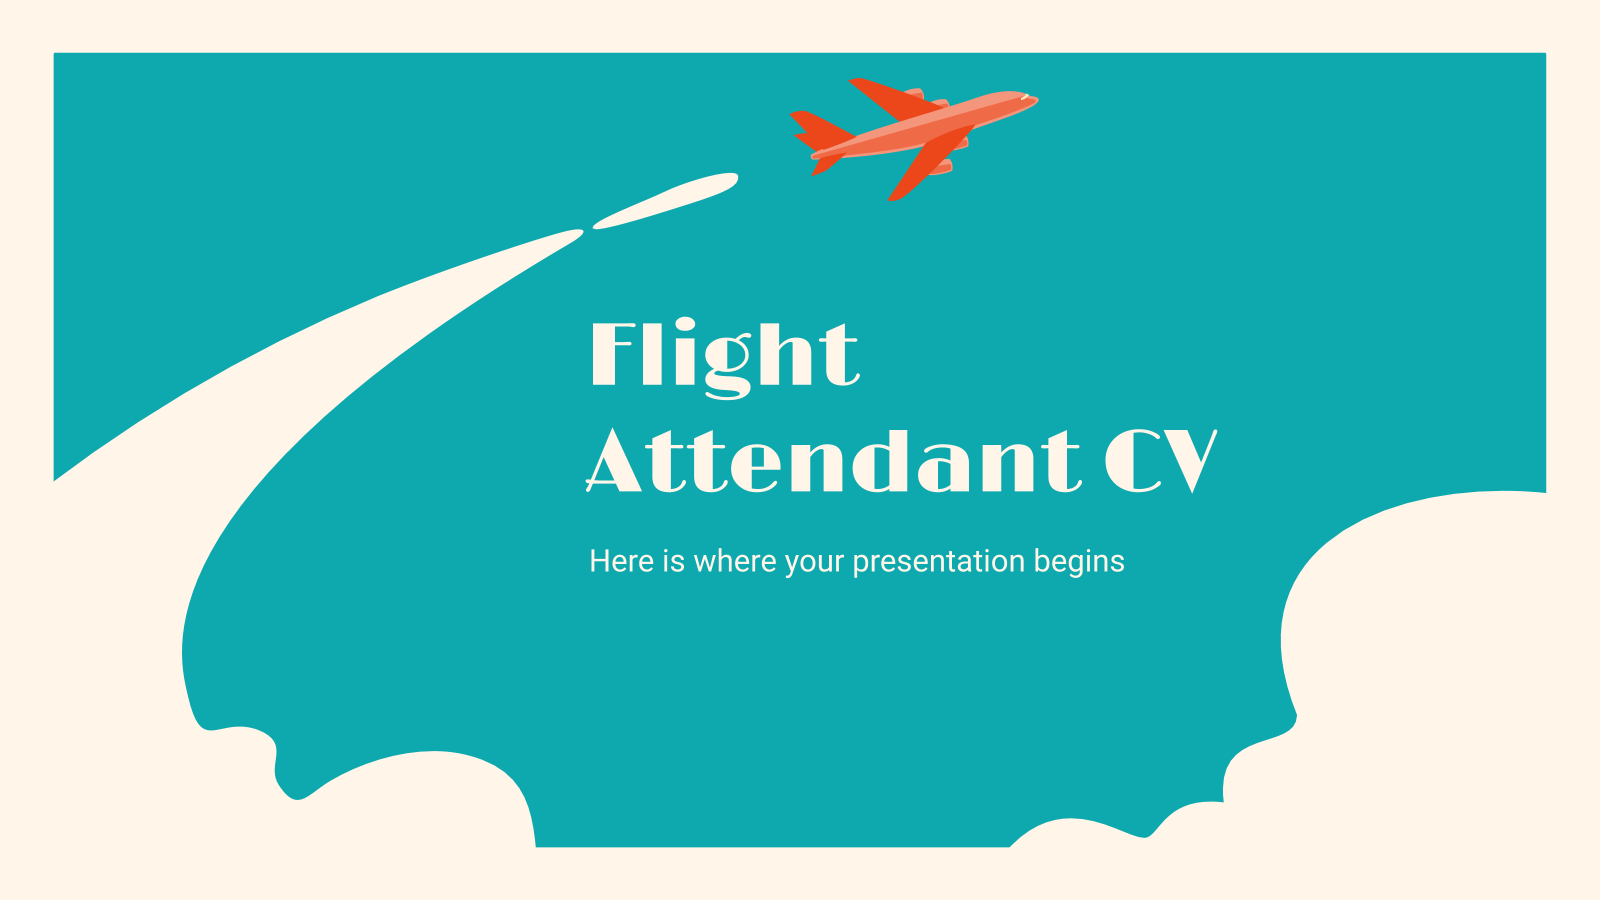 Flight Attendant CV presentation template